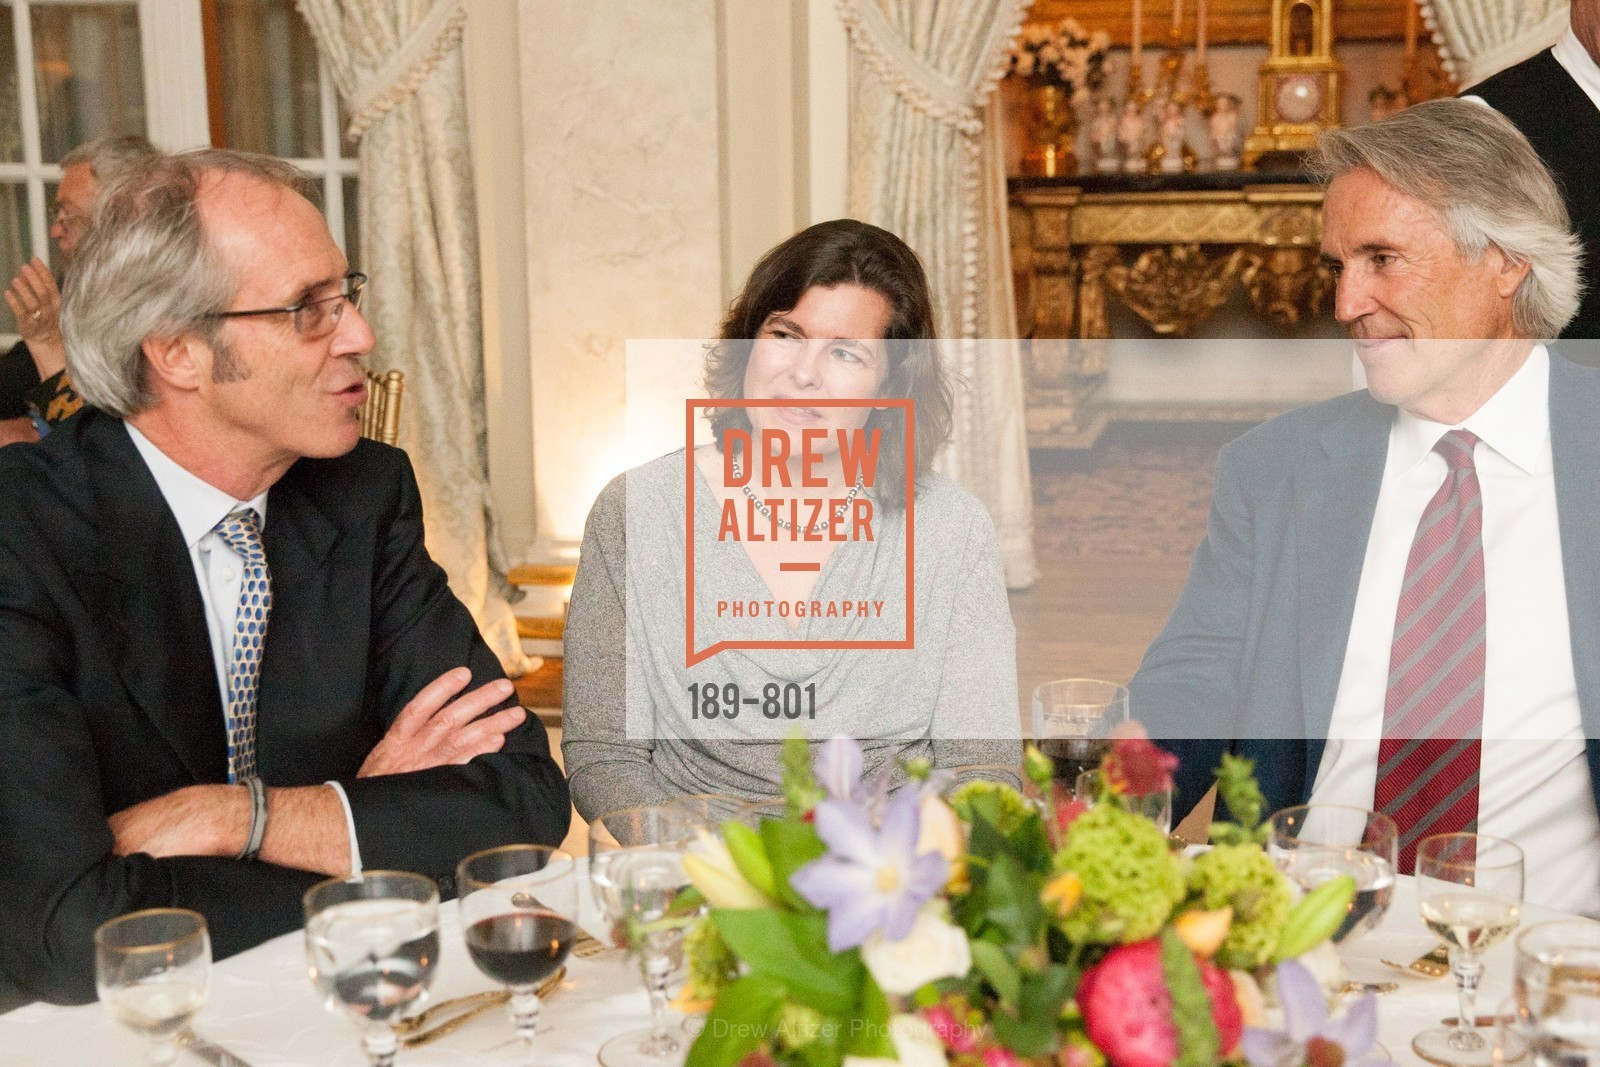 John Kunzweiler, Heather Heying, Bill Wirthlin, GETTY Hosts Leakey Foundation Dinner, US, April 23rd, 2015,Drew Altizer, Drew Altizer Photography, full-service agency, private events, San Francisco photographer, photographer california